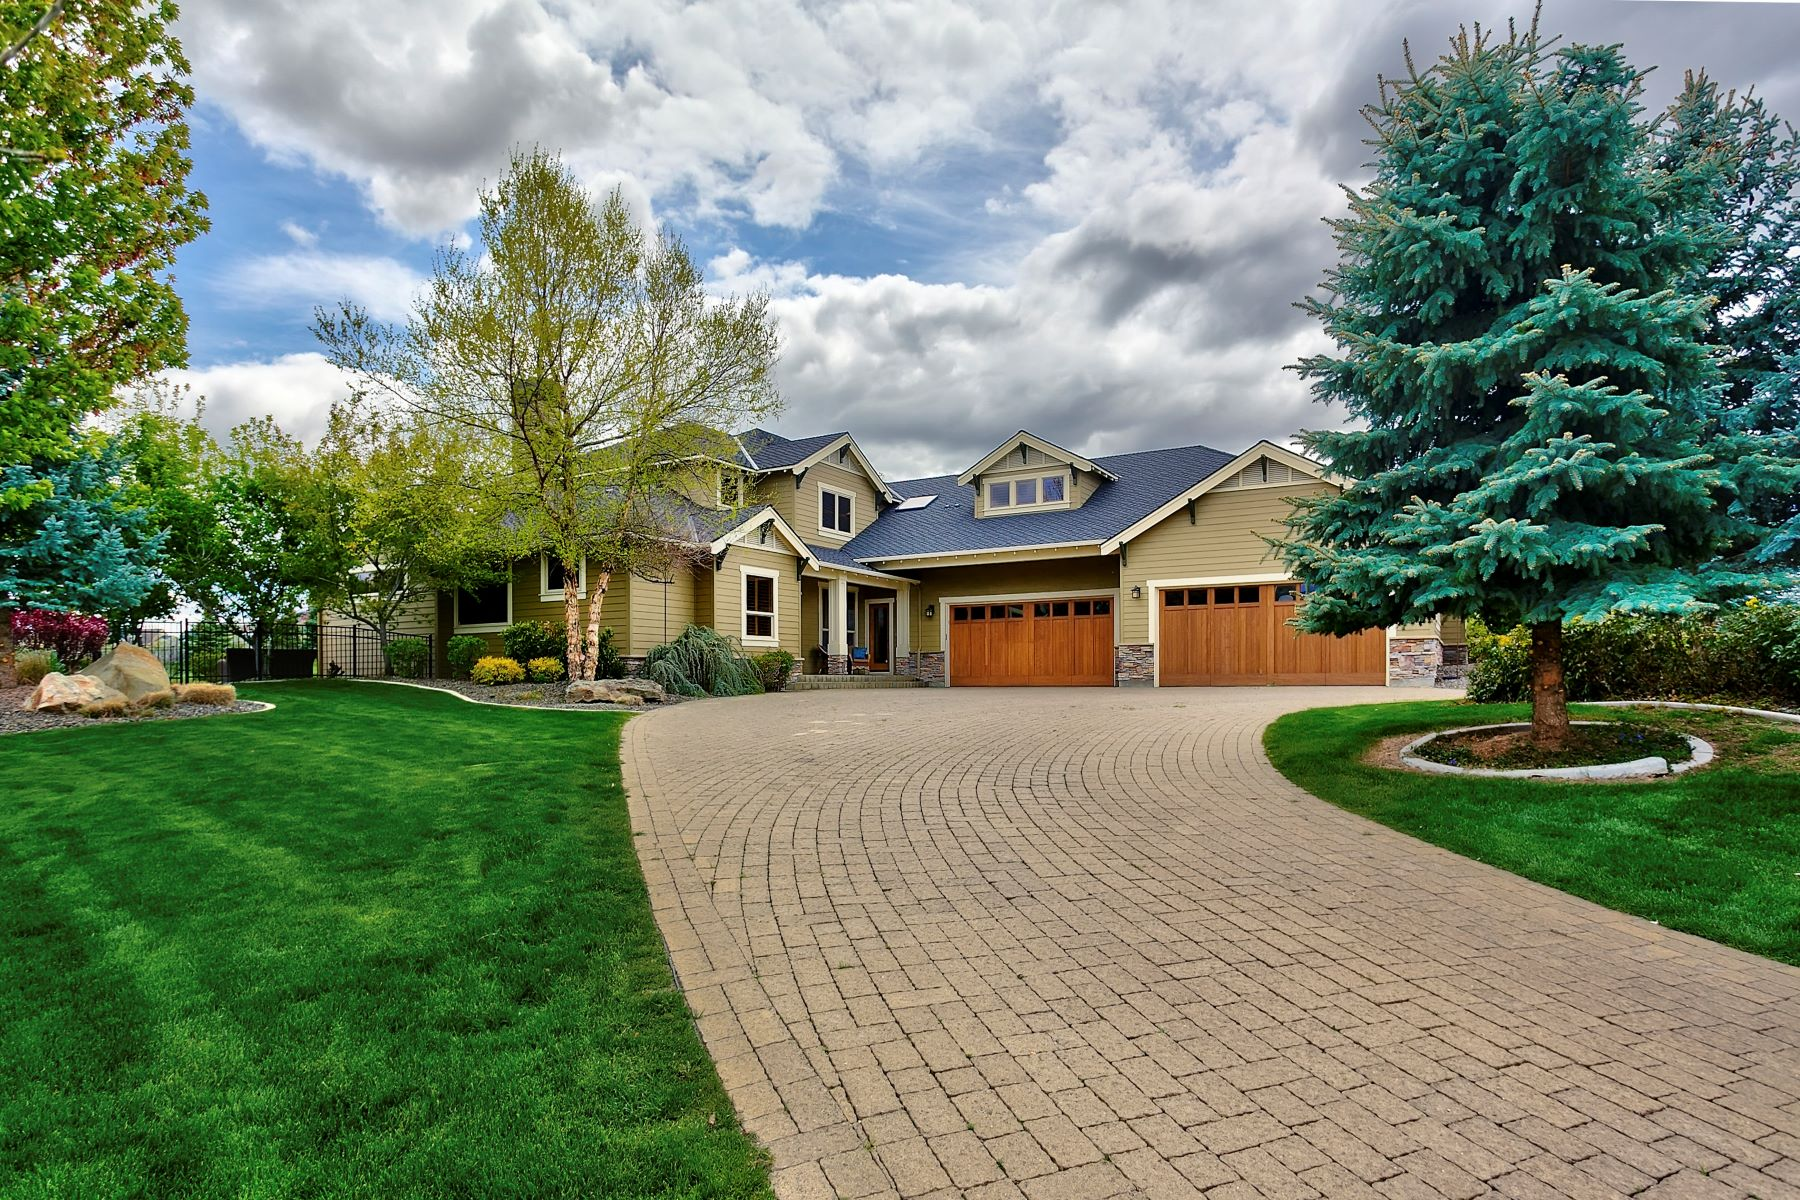 Single Family Home for Sale at 12914 Town Ridge Road, Boise 12914 N Town Ridge Rd Boise, Idaho, 83714 United States